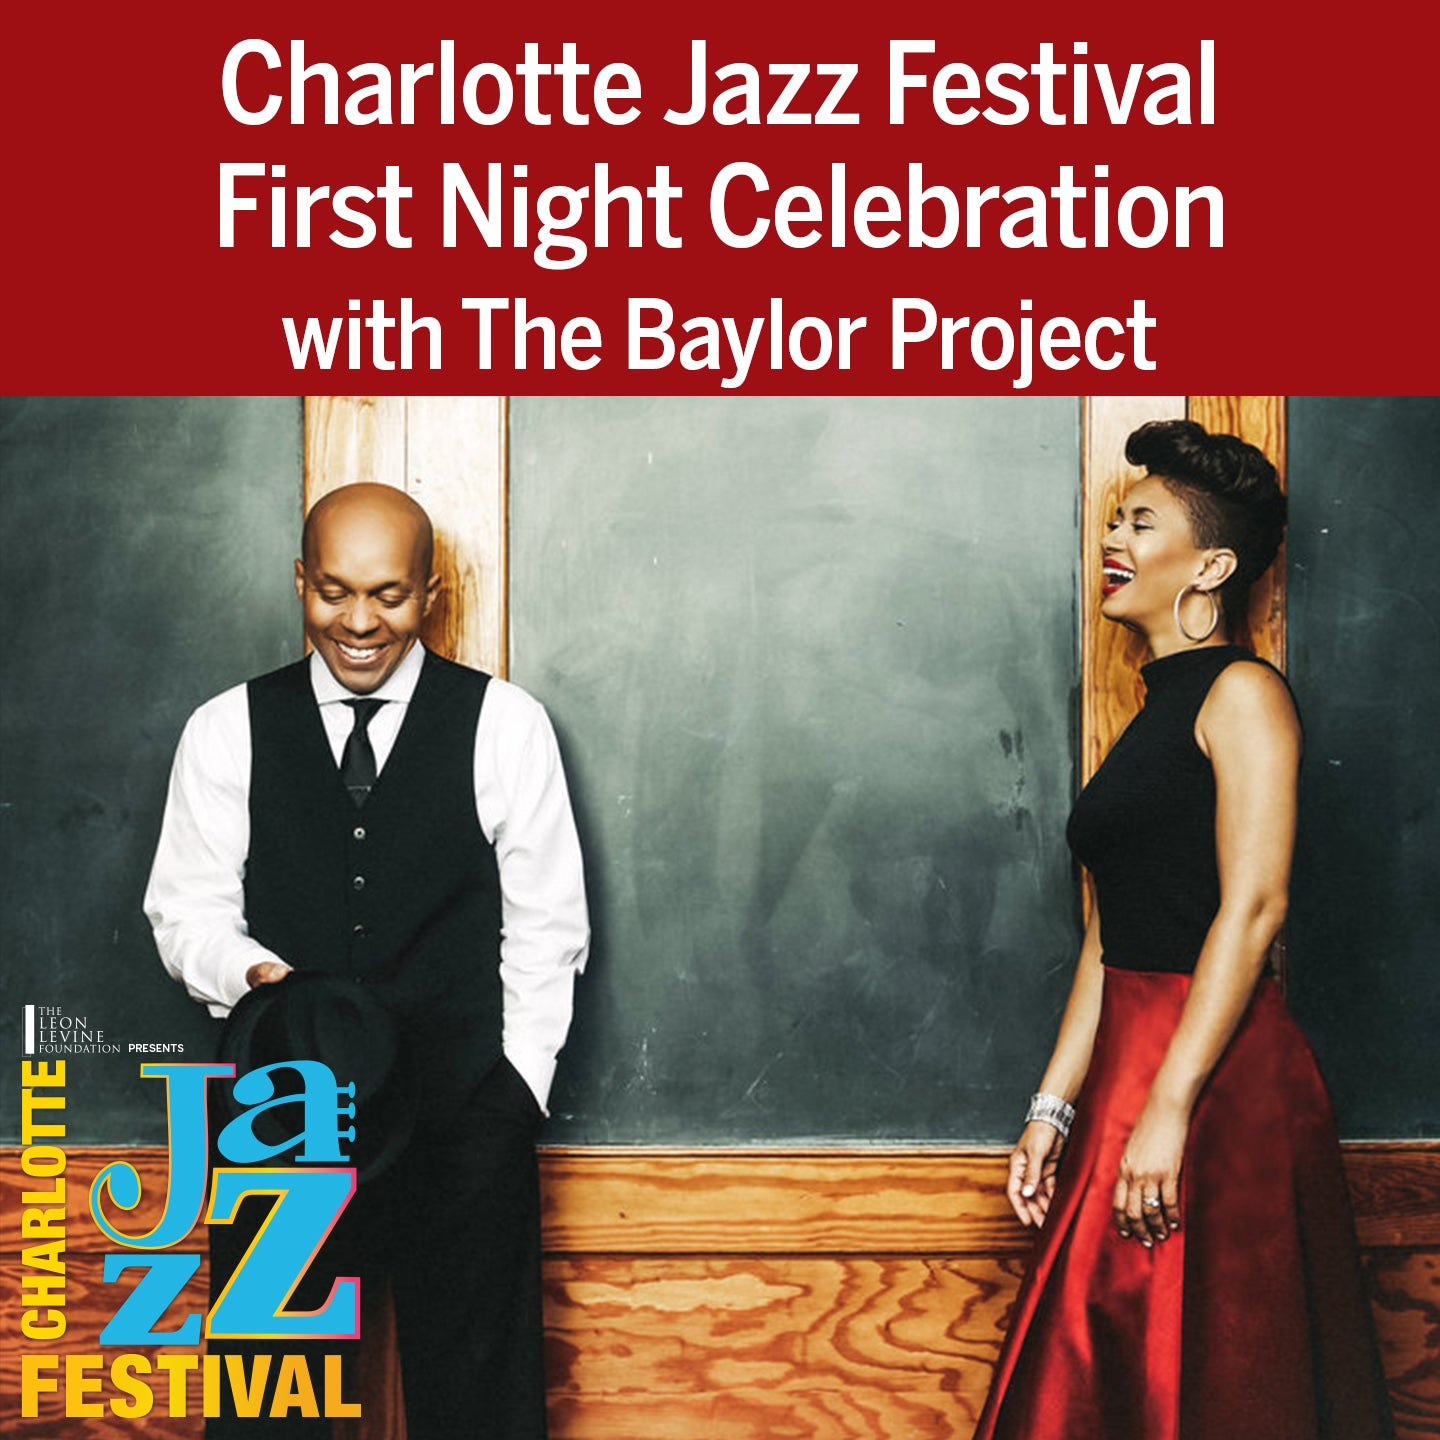 Charlotte Jazz Festival First Night Celebration with The Baylor Project